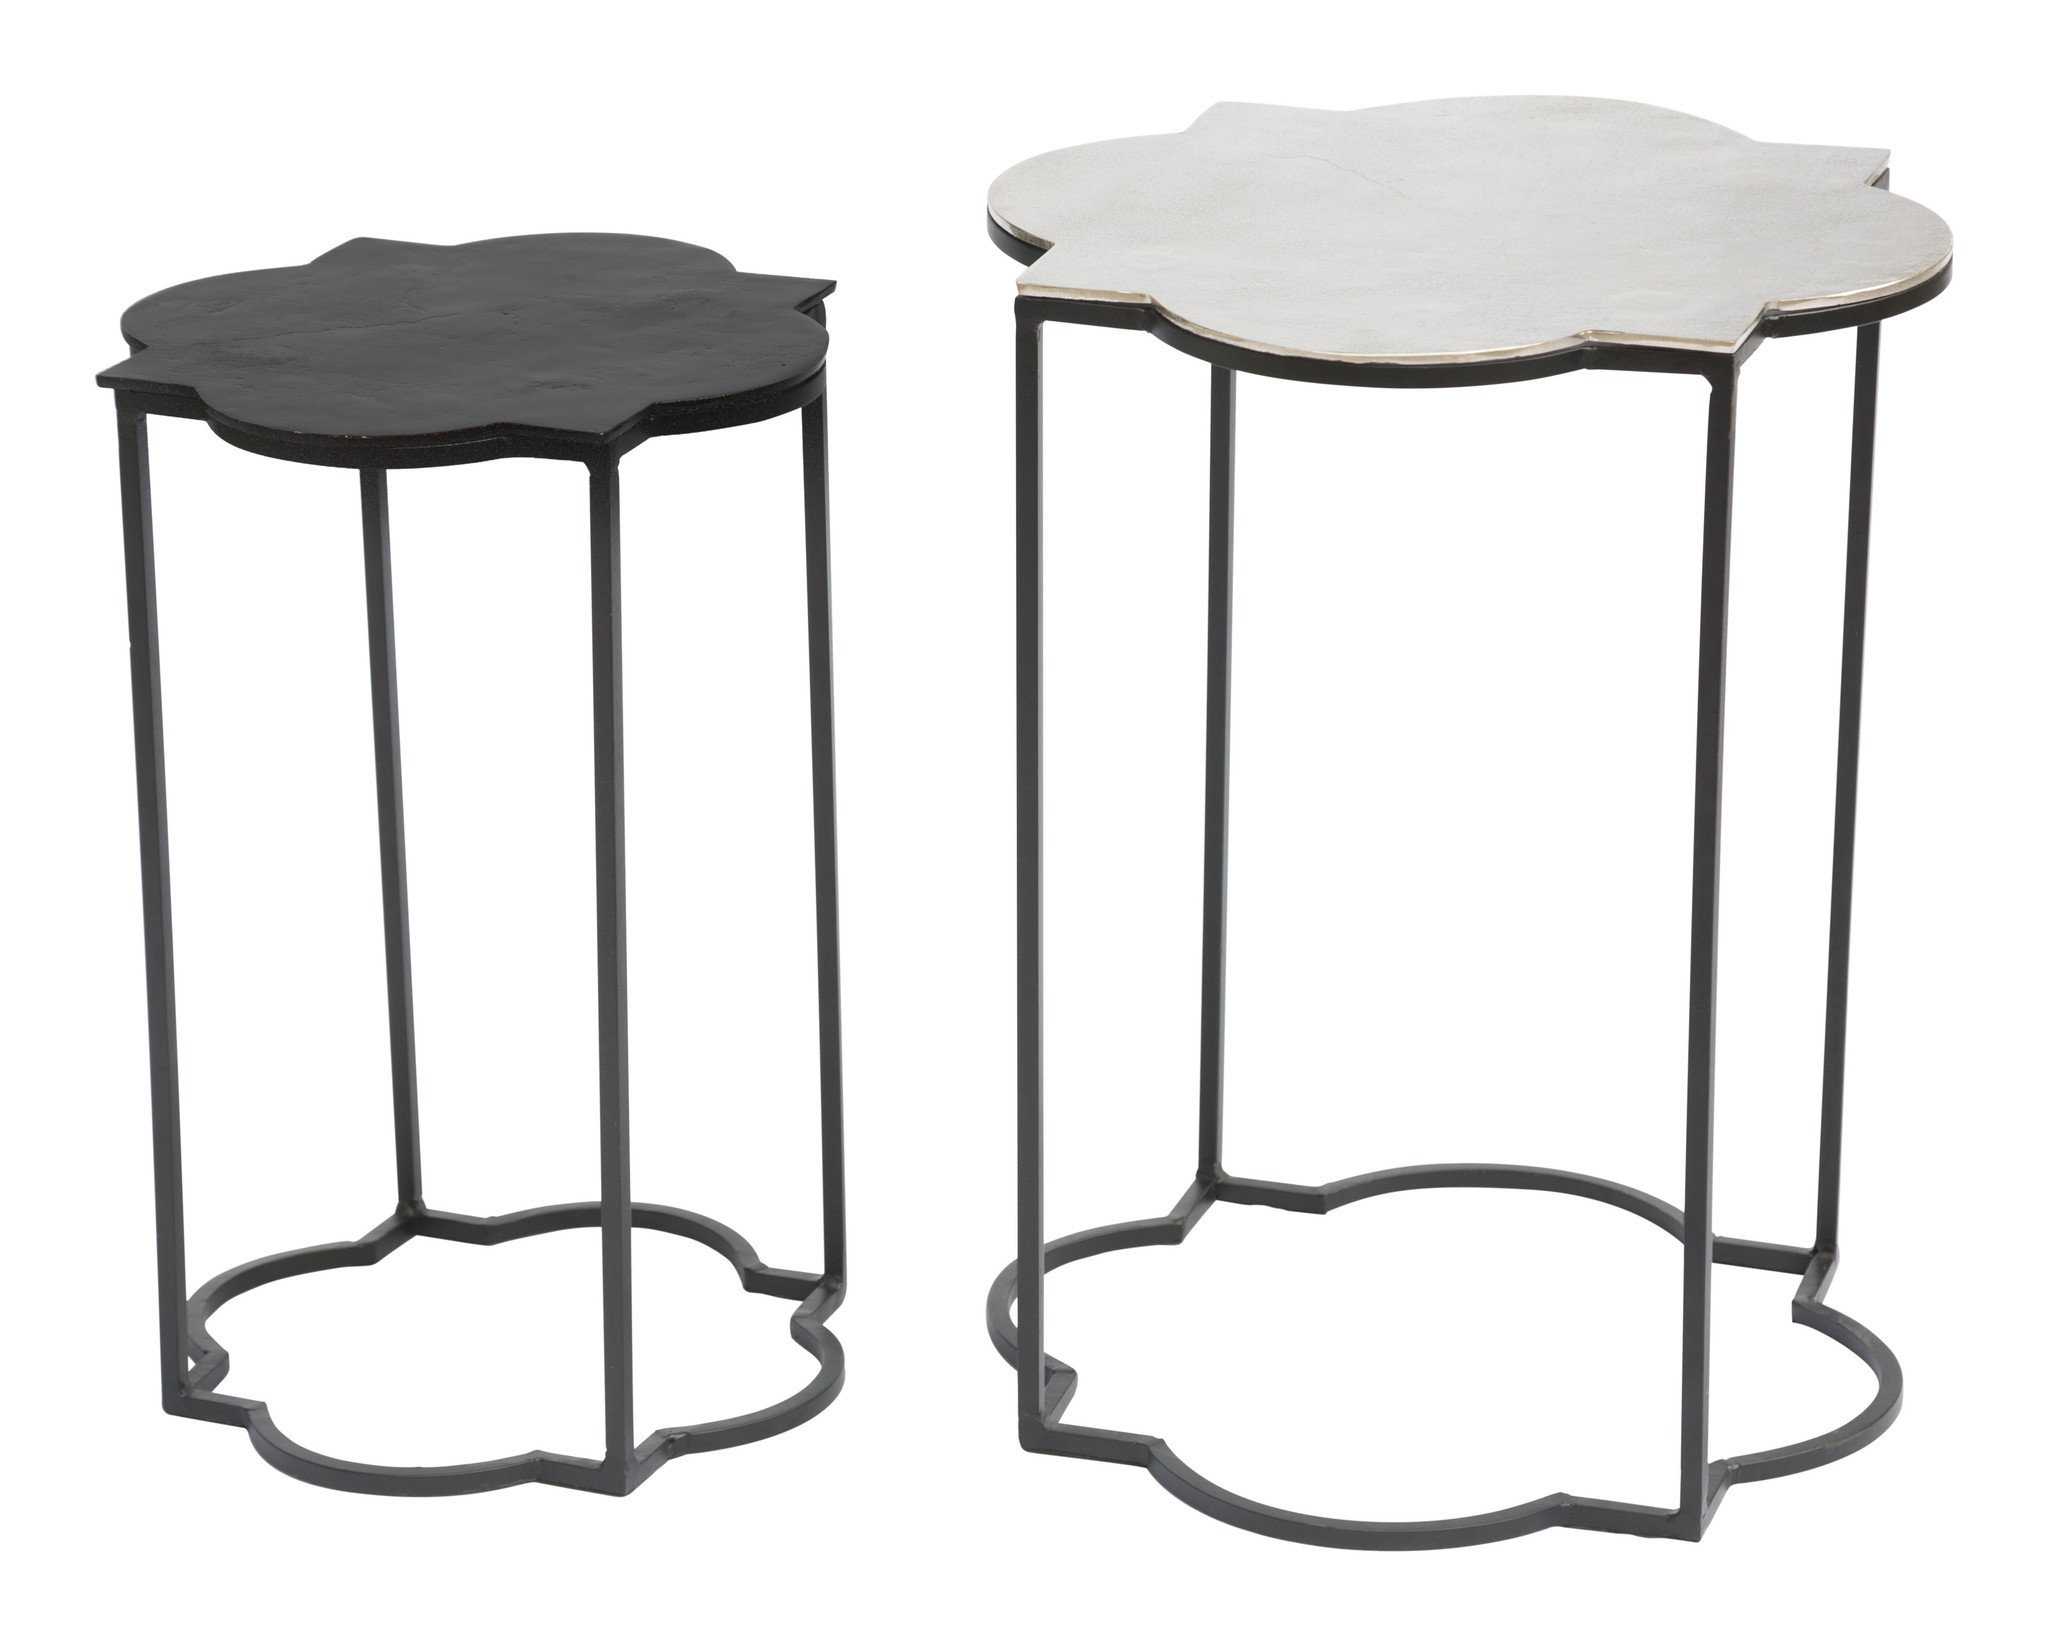 modern contemporary rustic vintage side end tables alan decor brighton accent table set black white xxl dog cage ikea glass top tall nesting west elm couch bean laura ashley lamps